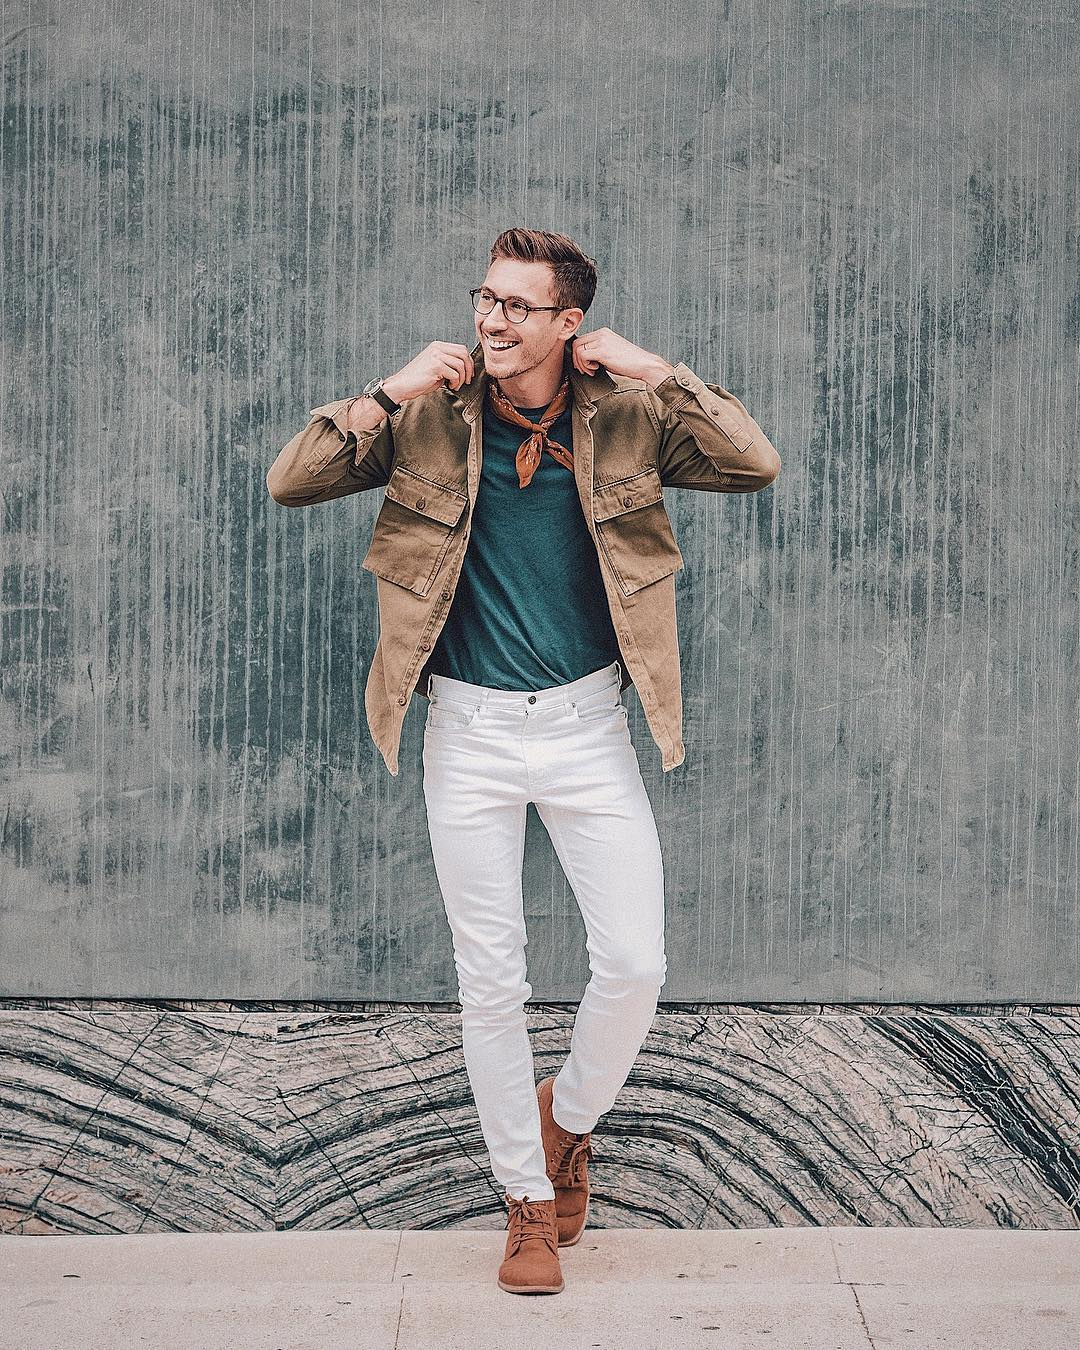 20 Men's Fall Outfit Ideas Updated for 20 Guys' Style ...